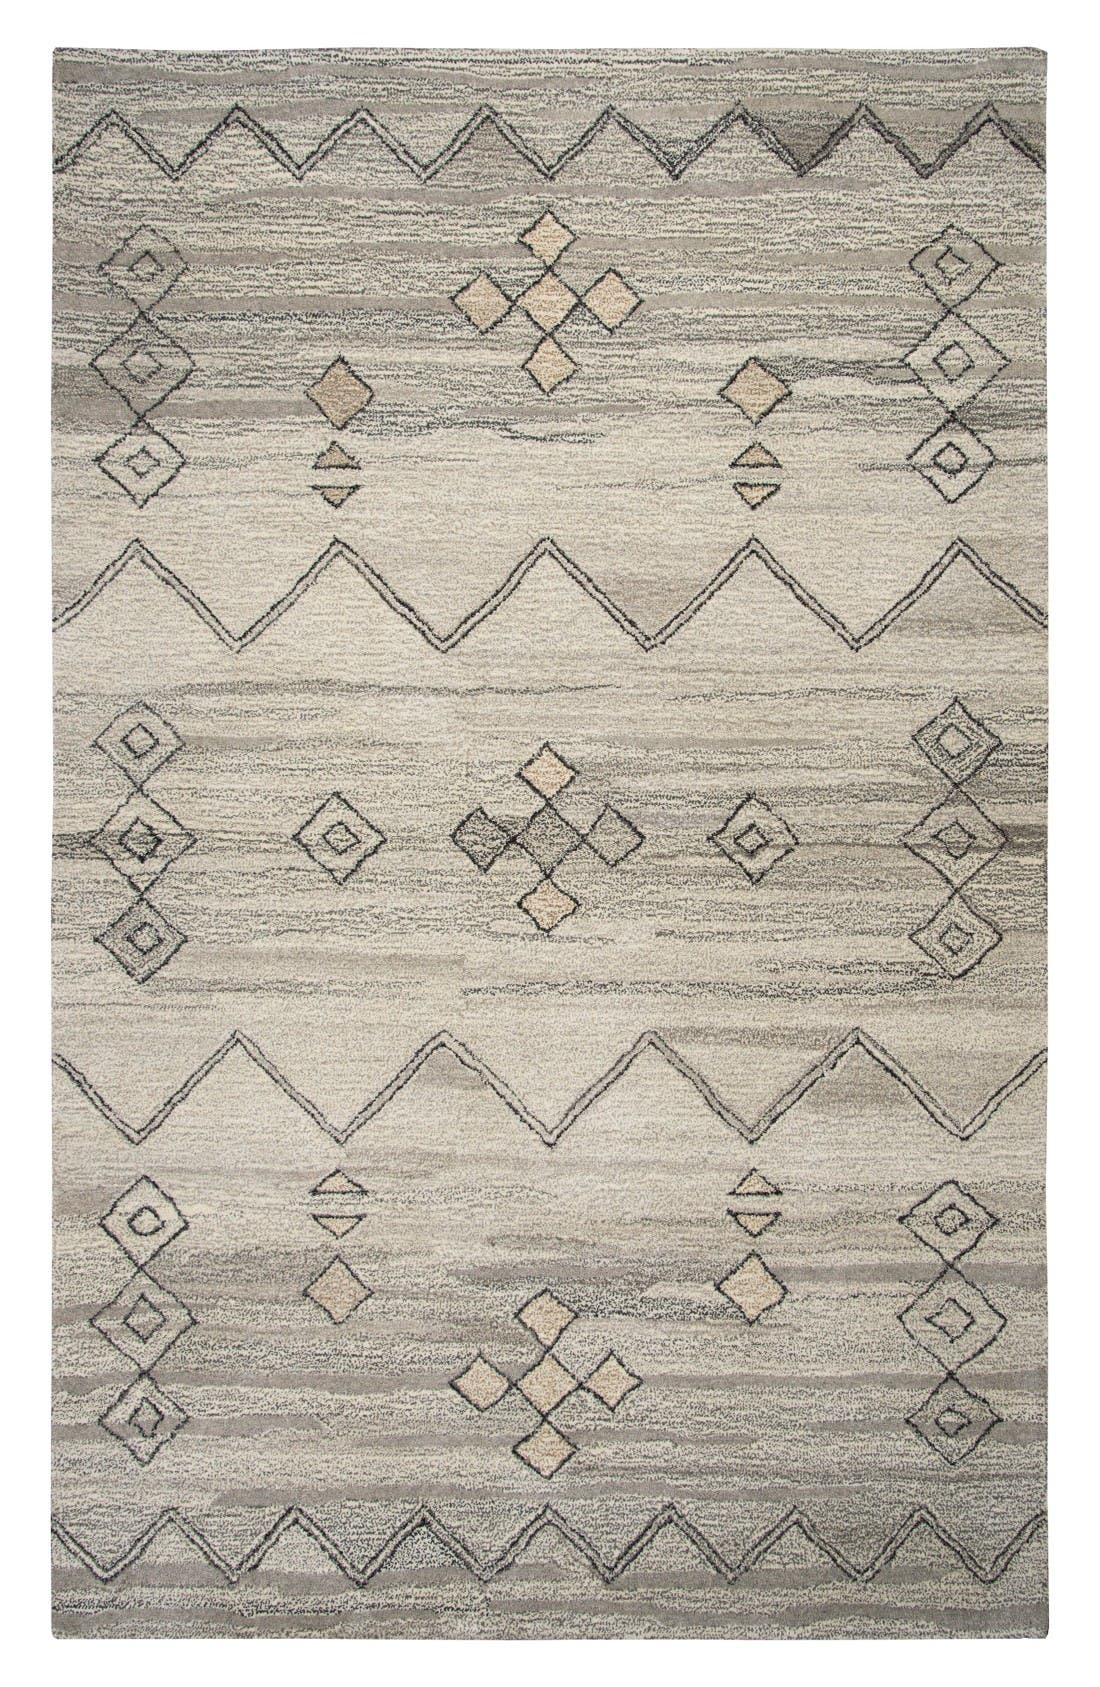 Alternate Image 1 Selected - Rizzy Home Desert Plains Hand Tufted Wool Area Rug